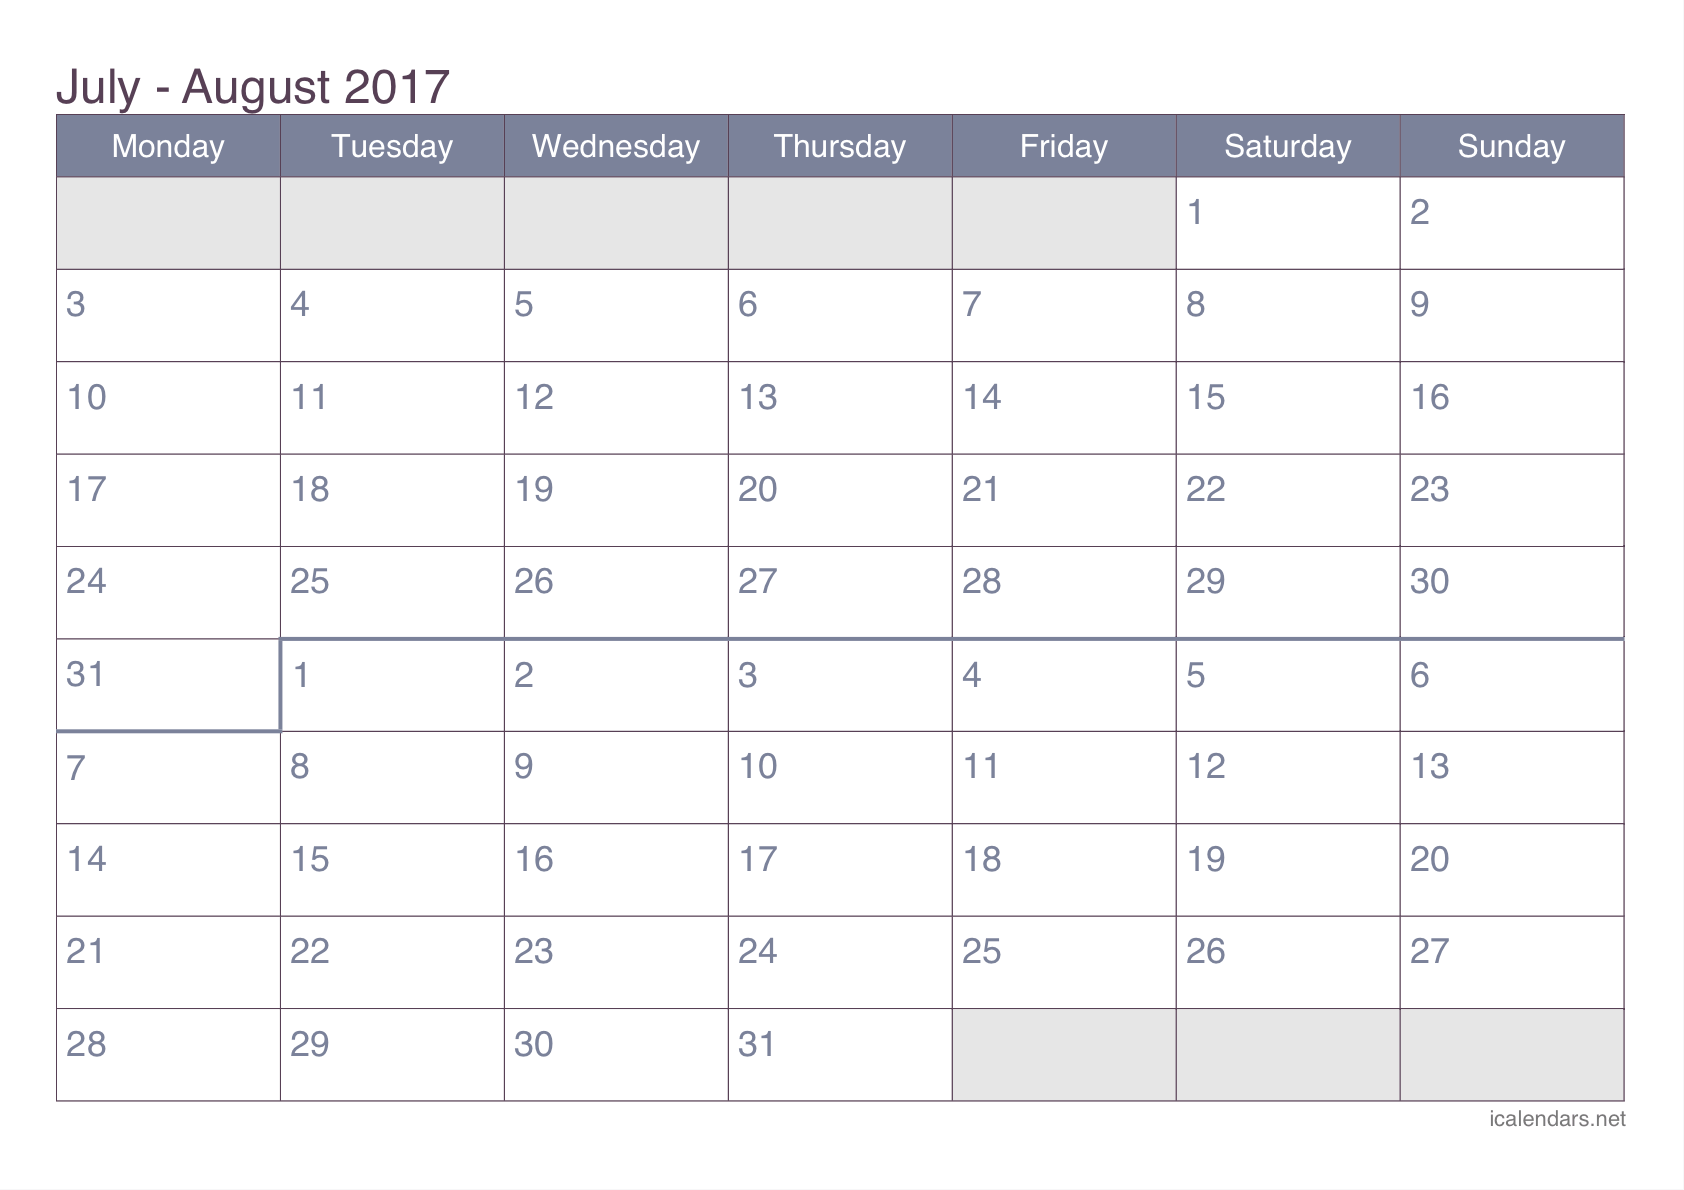 LSI 2017 Work Week Calendar - Astronics Corporation